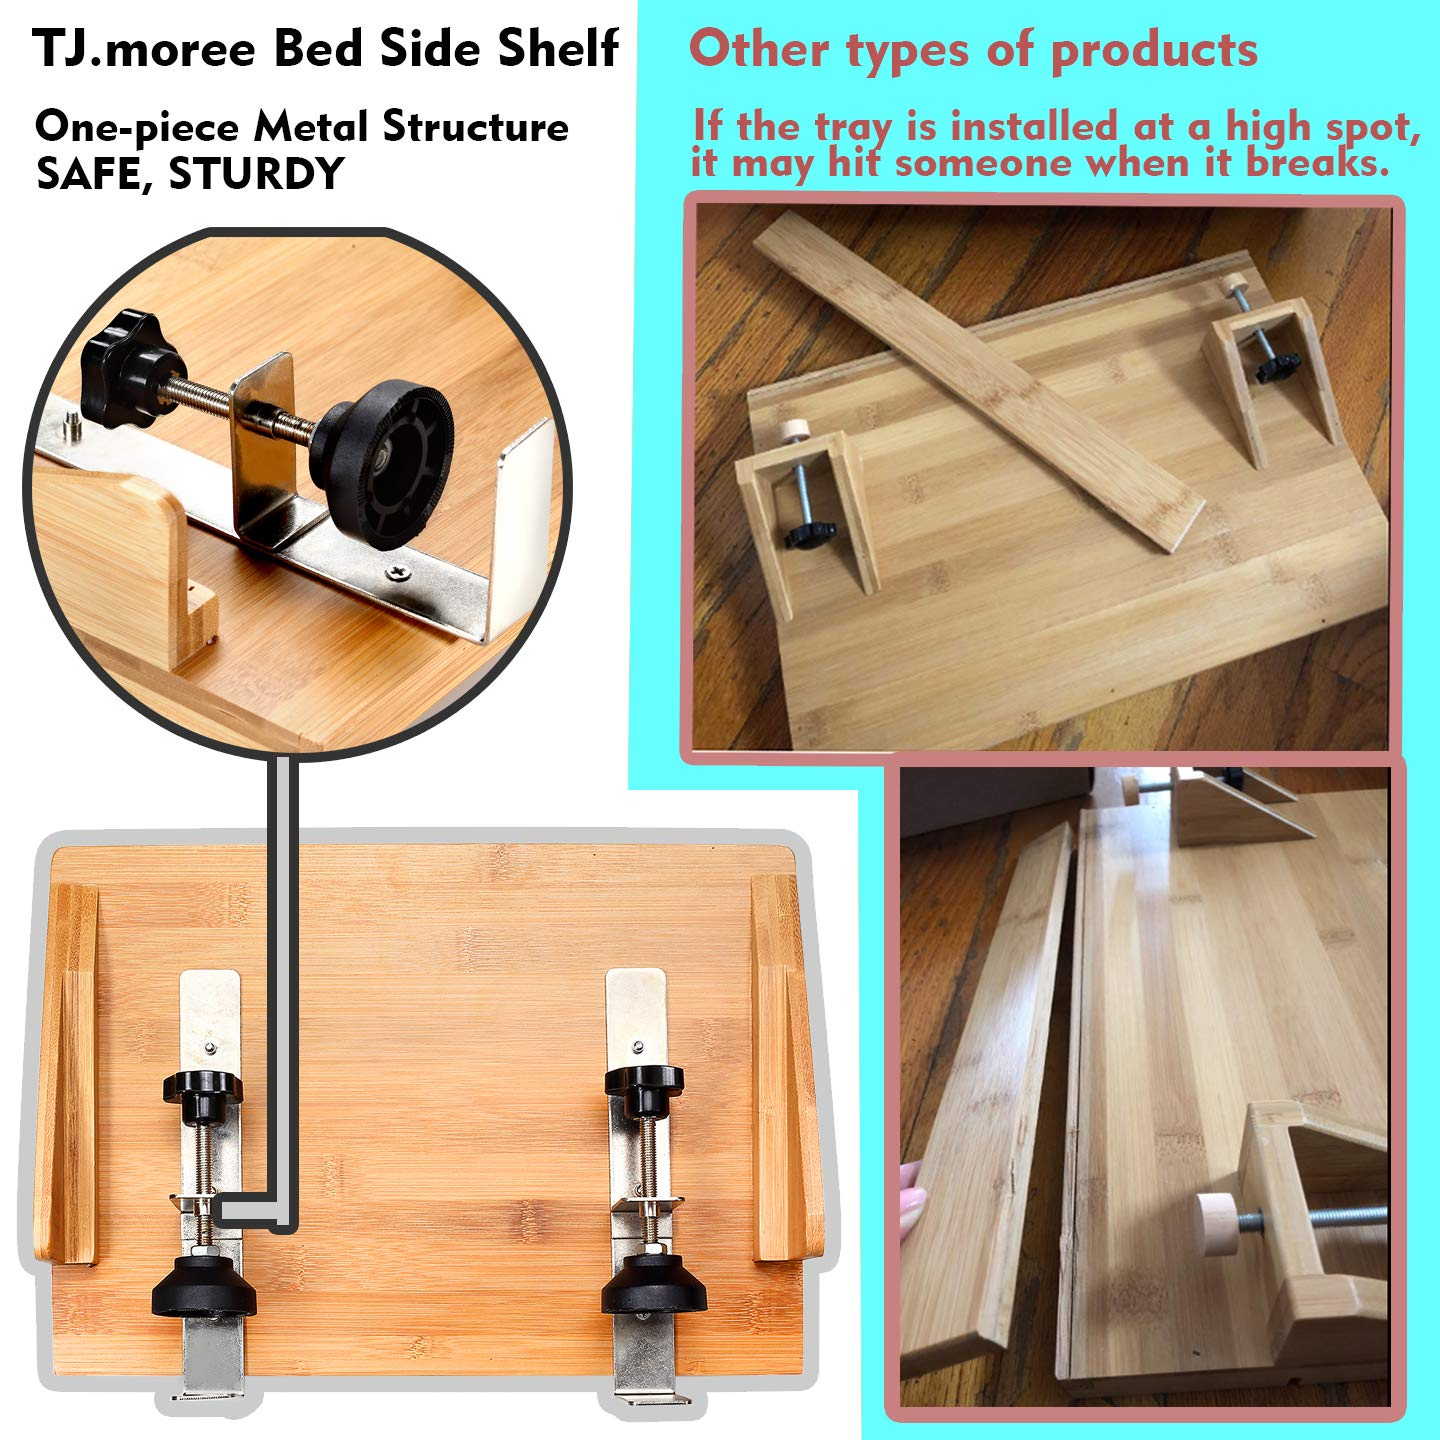 Lofts Beds Bedside Caddy Table Shelf Organizer Non Slip Bamboo Floating Nightstand For Bunk Beds College